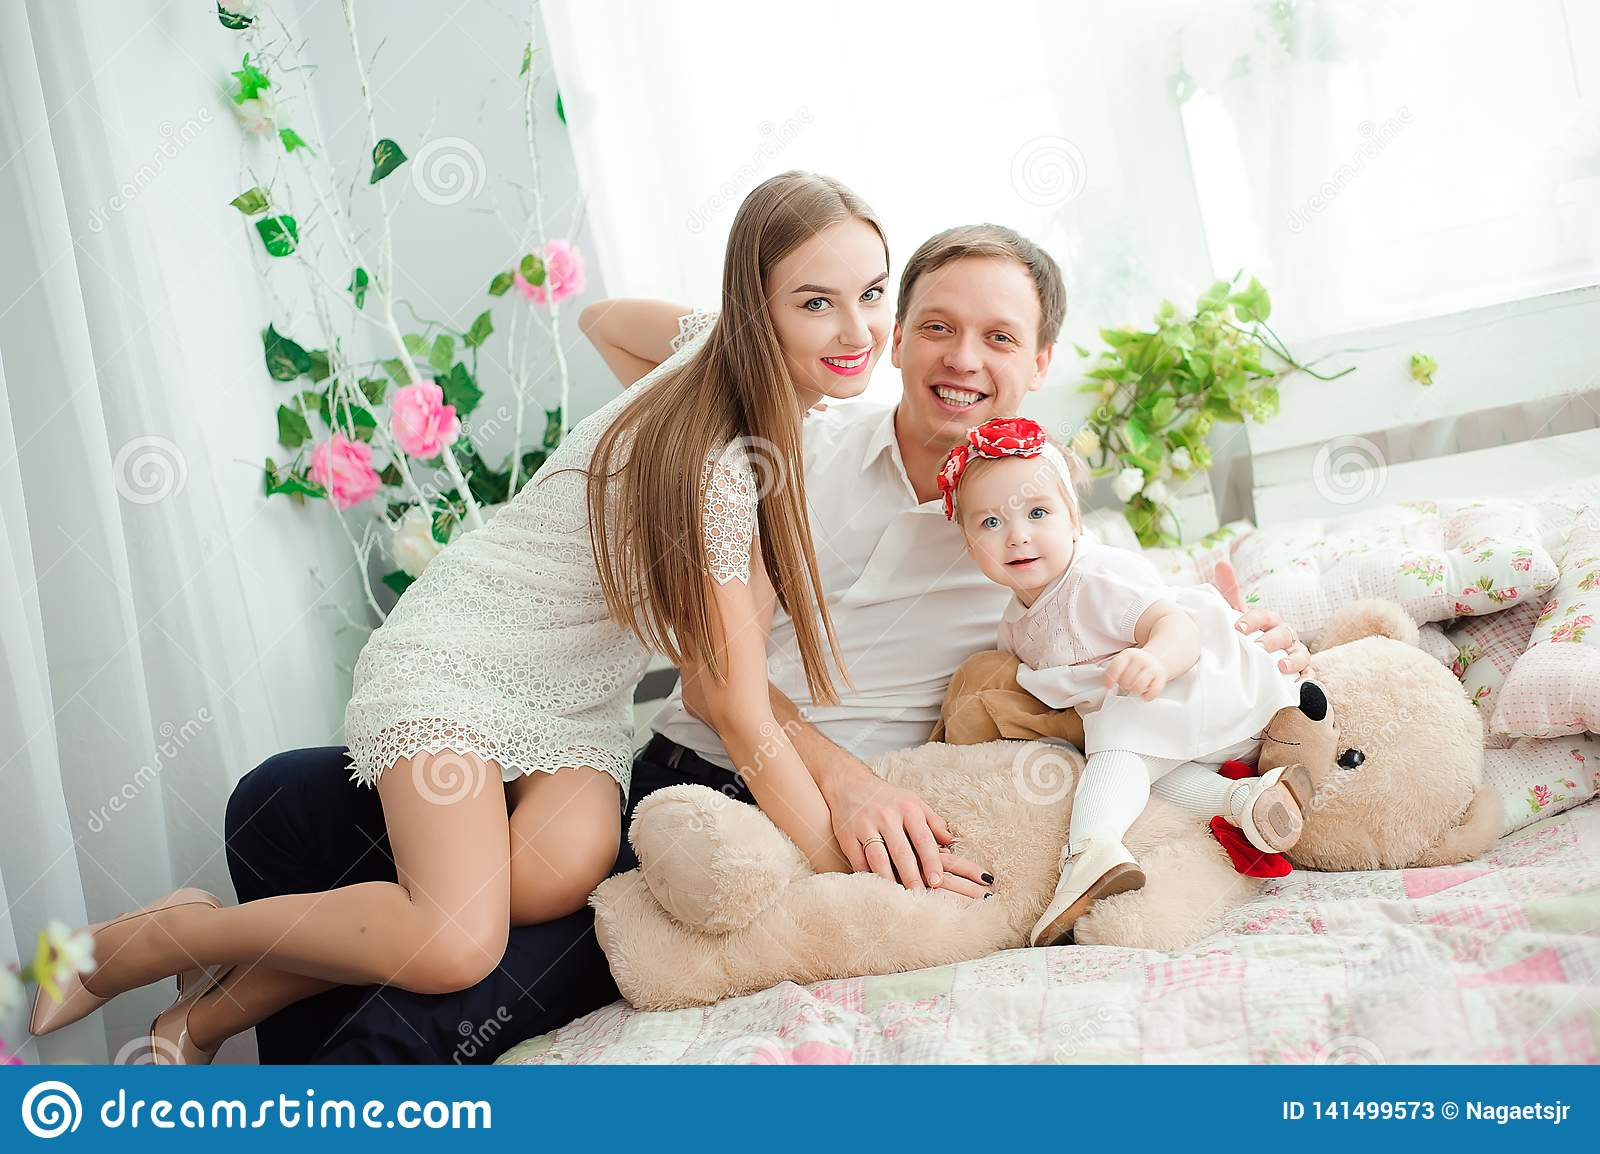 Lovely family smiling and laughing, posing at camera, and hugging each other for family photo.